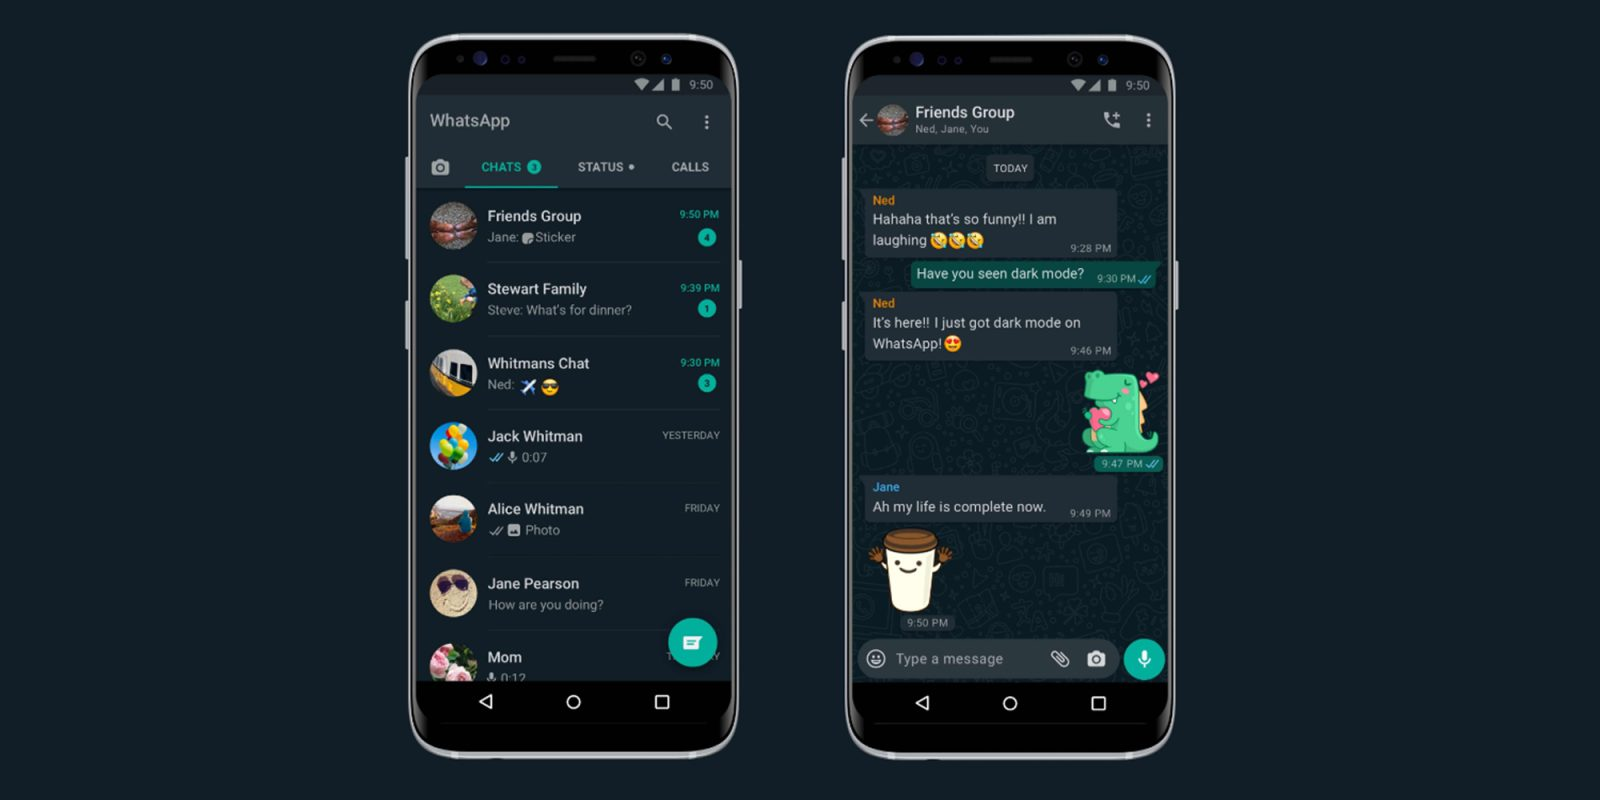 WhatsApp Dark Mode Now Available to All Android Users